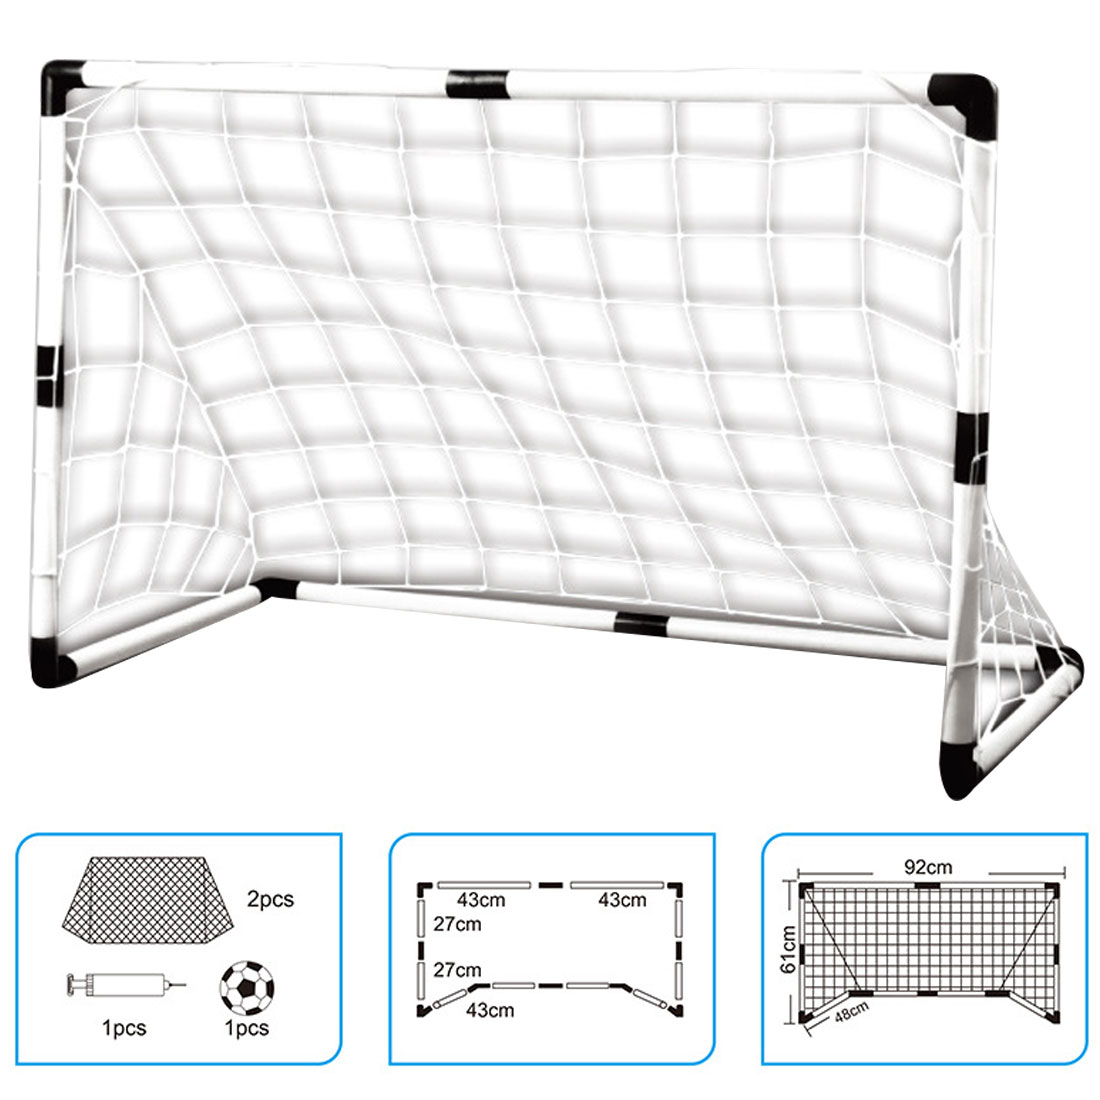 2 Sets Detachable DIY Children Sports Soccer Goals Practice Scrimmage Game Football Gate DIY White With Soccer Ball and Pump image